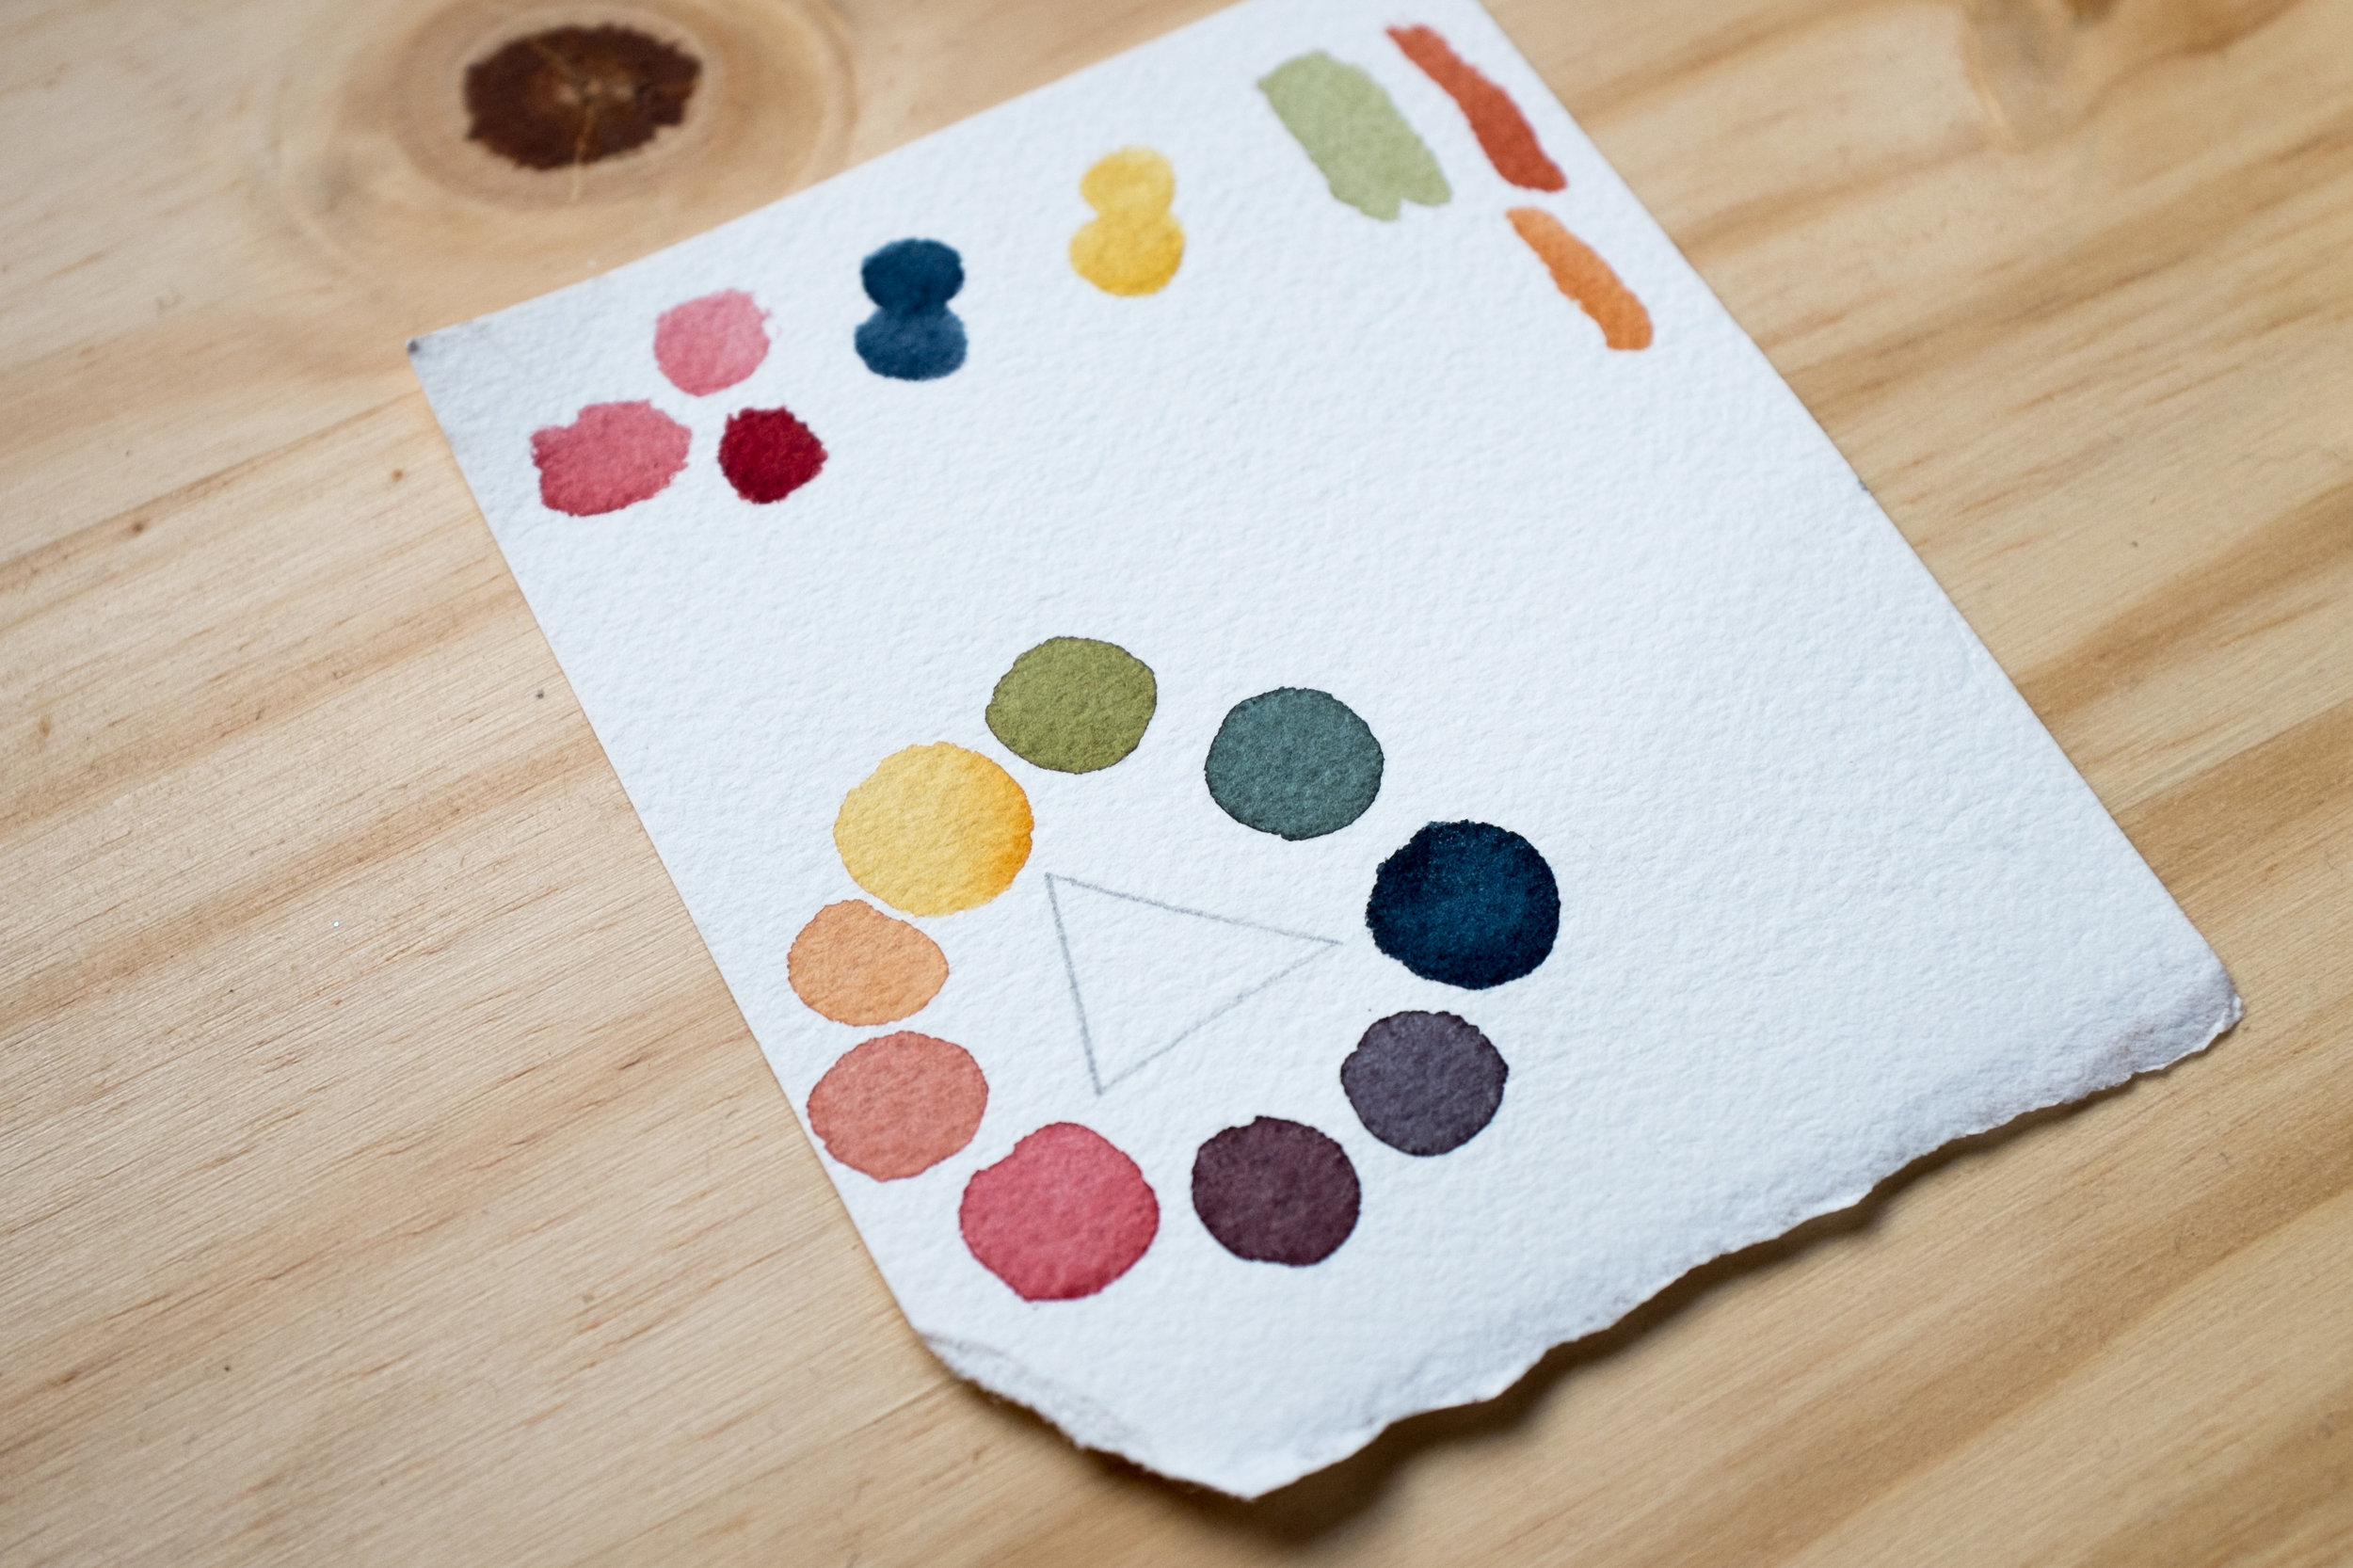 Watercolor Triad comprised of DS Quinacridone Gold, DS Perylene Maroon, and WN Payne's Grey